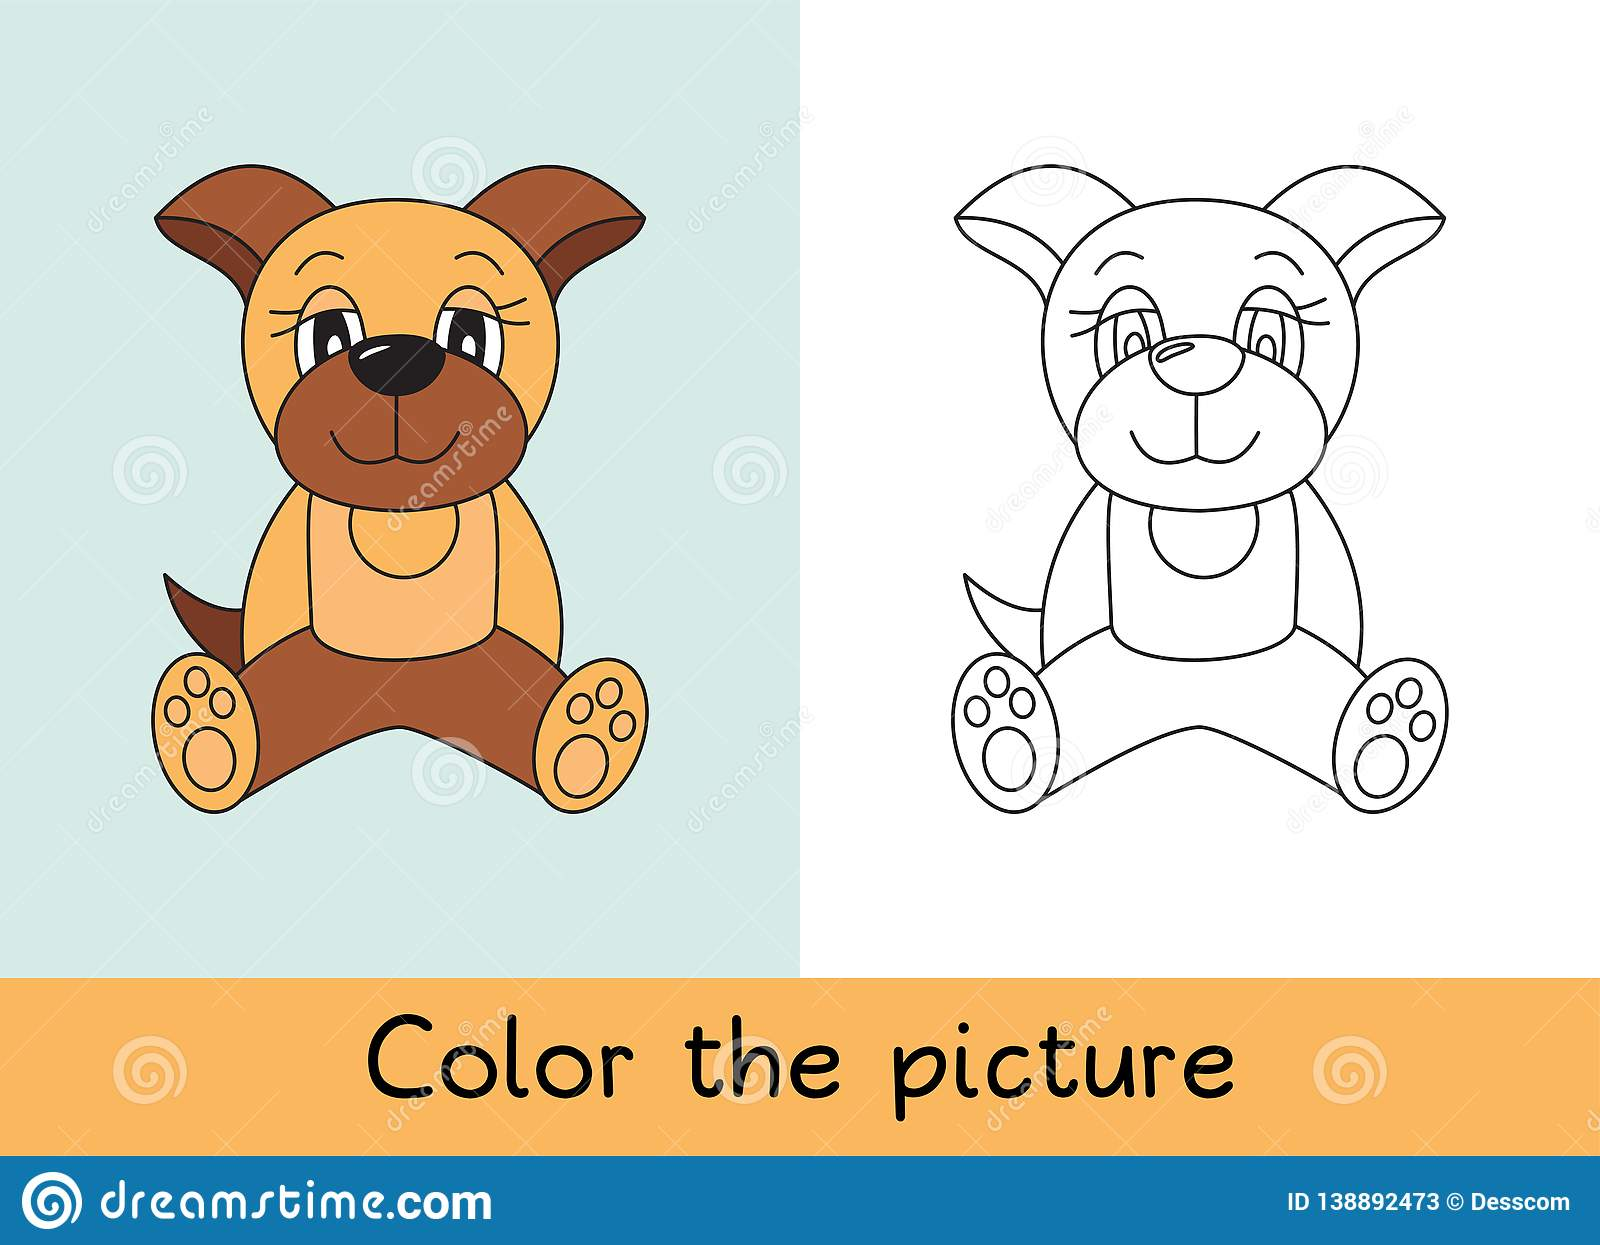 Coloring book. Dog pet. Cartoon animall. Kids game. Color picture. Learning by playing. Task for children